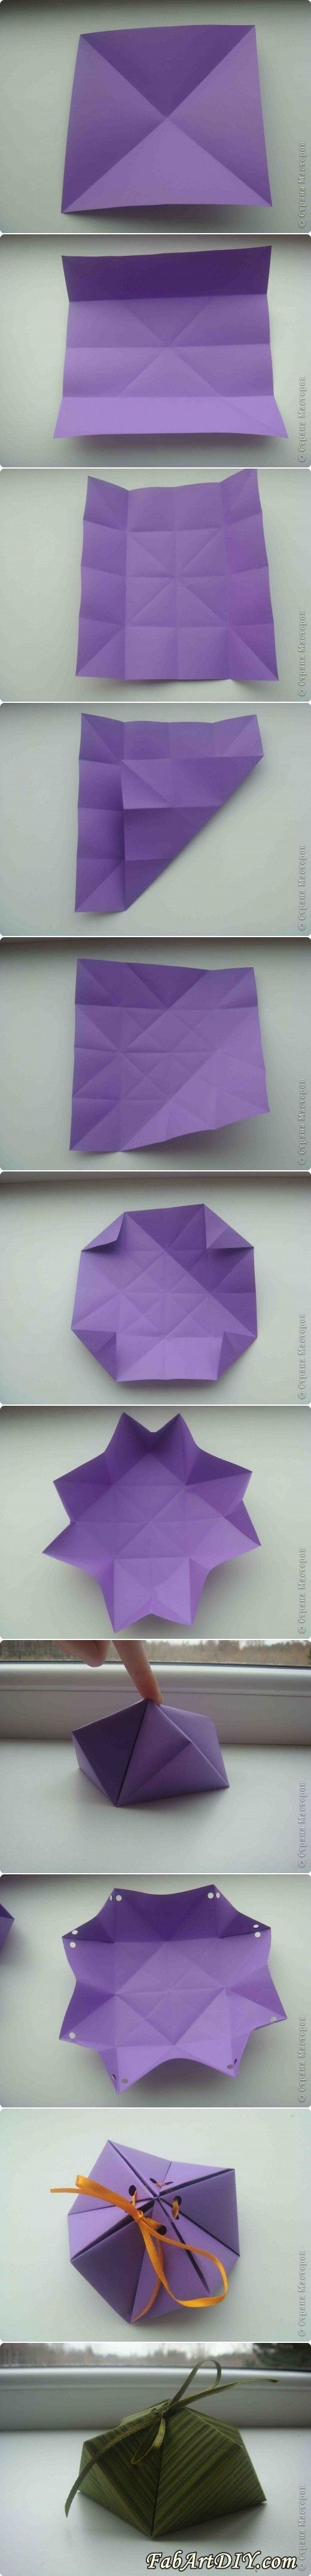 How to DIY Paper Origami Gift Box